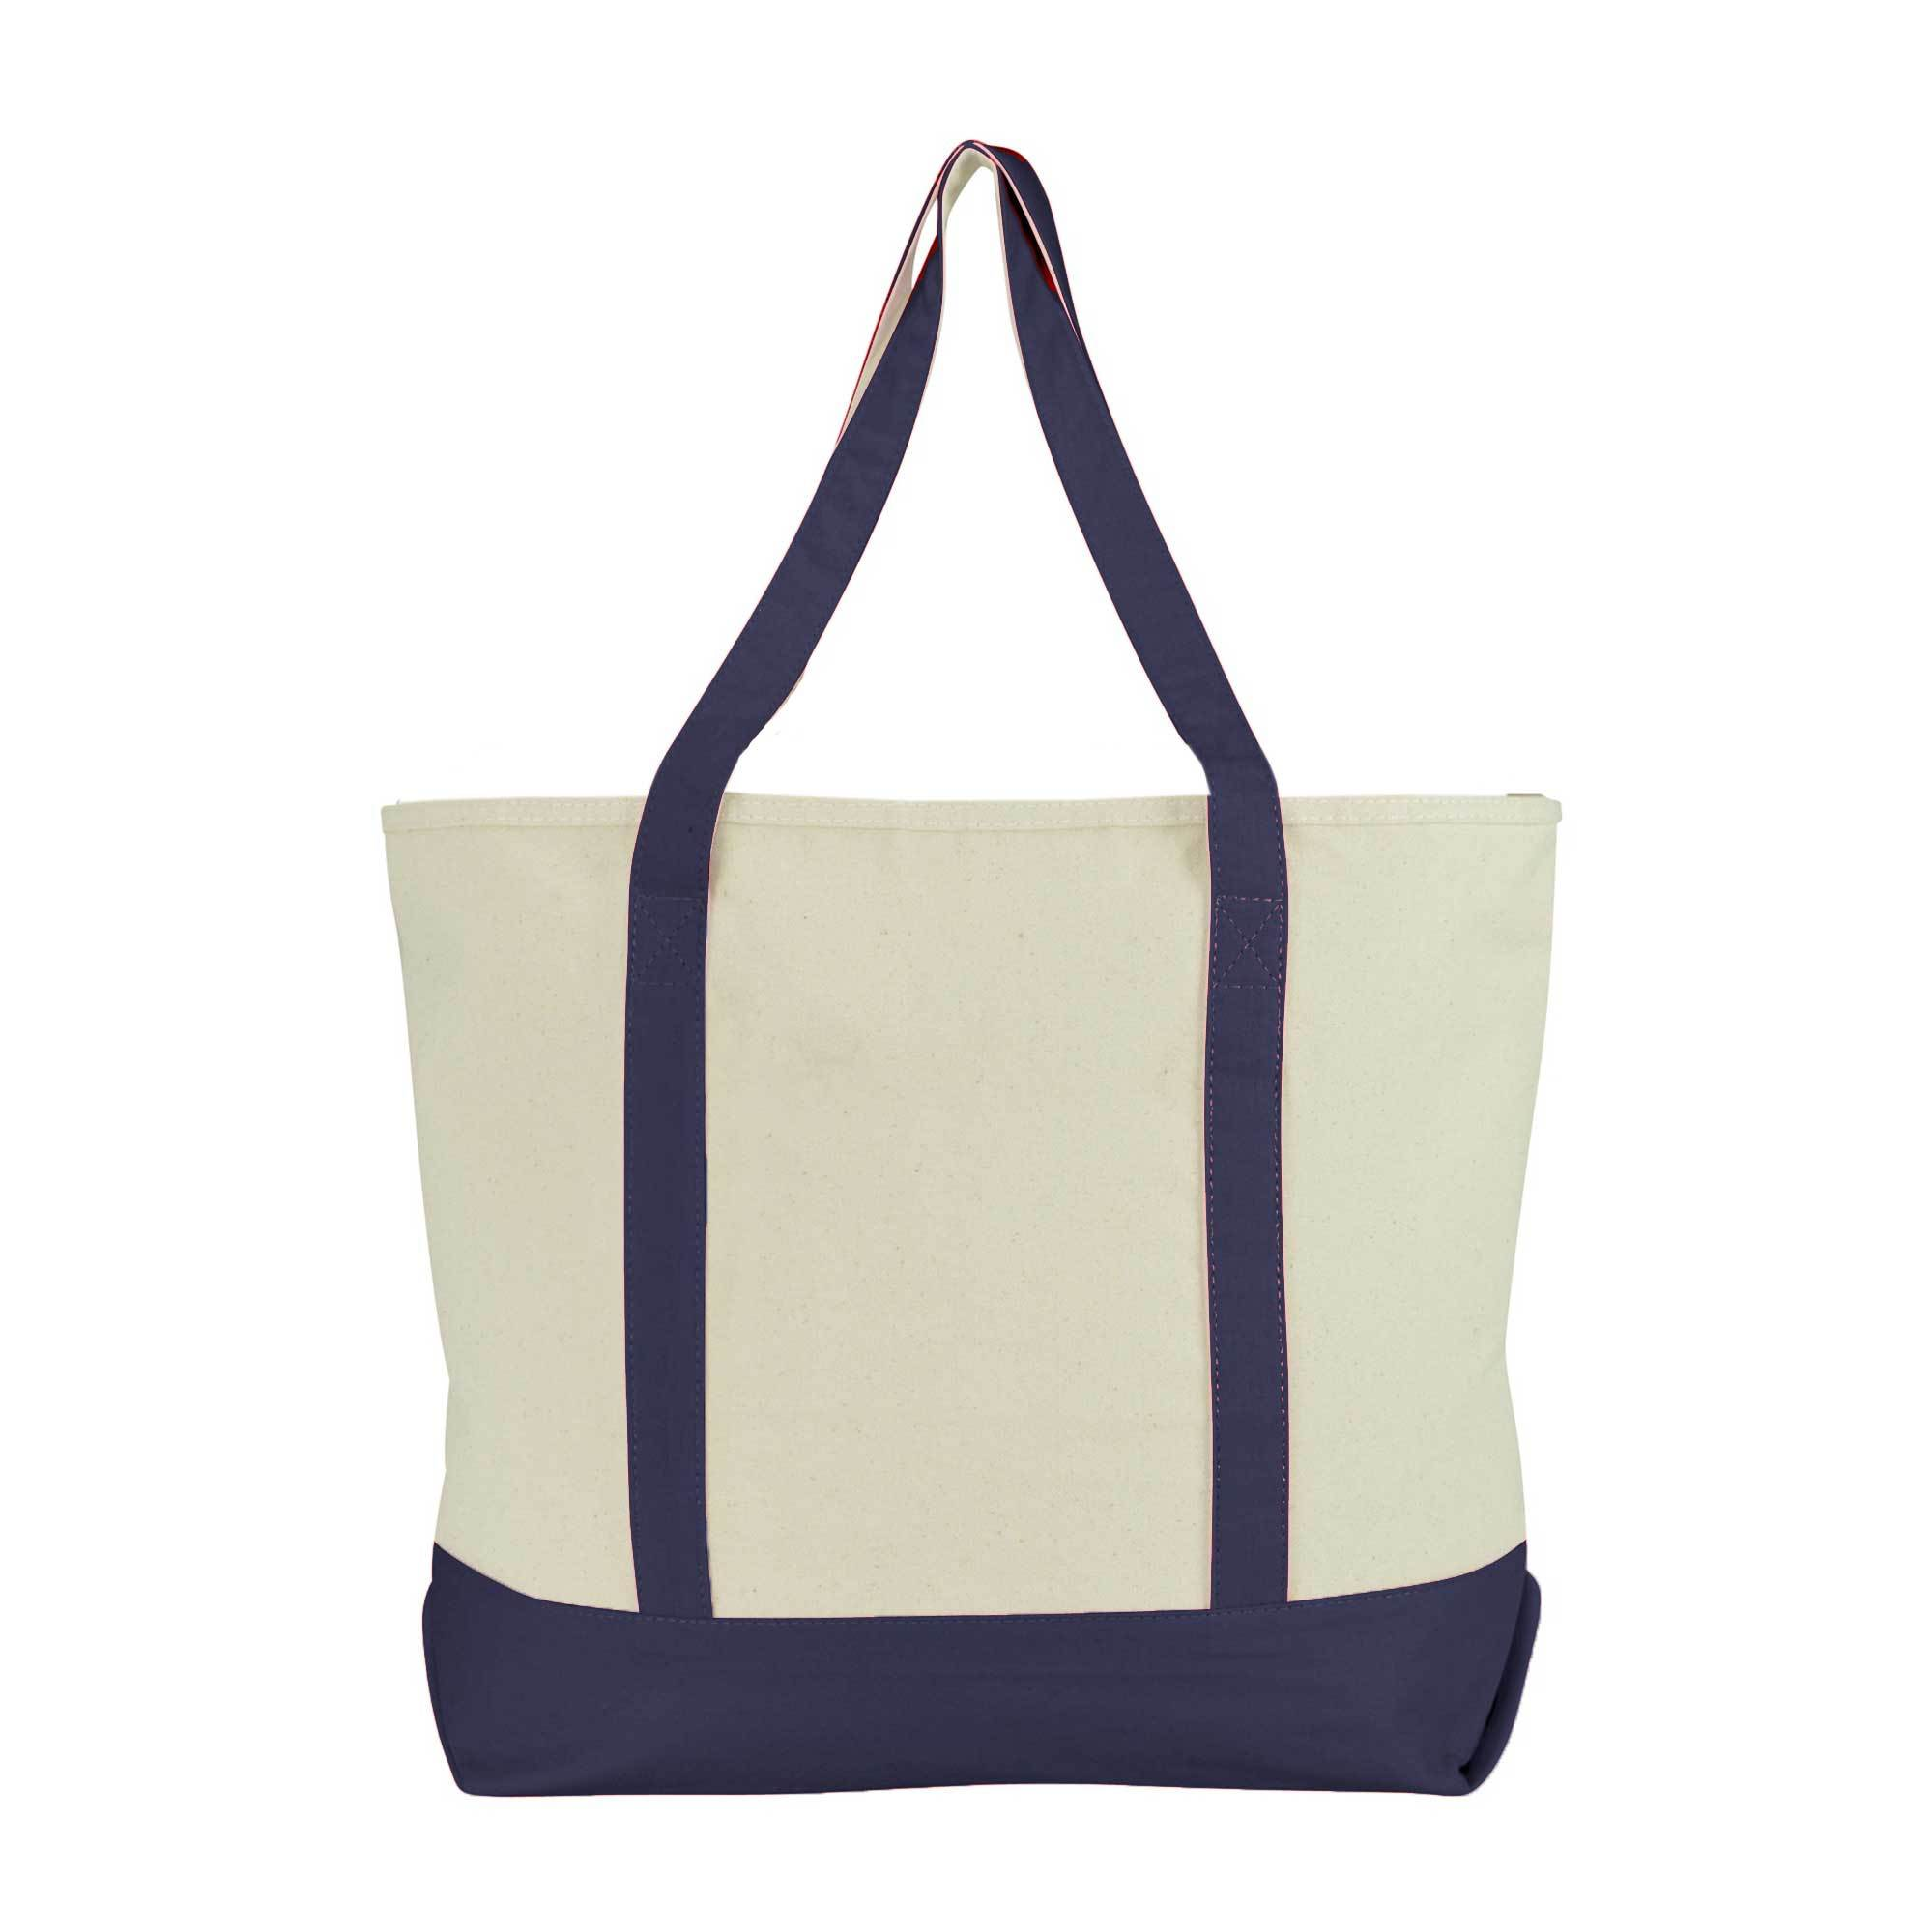 MB Premium Quality Canvas Storage Tote Bag Hand Bag MB Traders Cream Navy